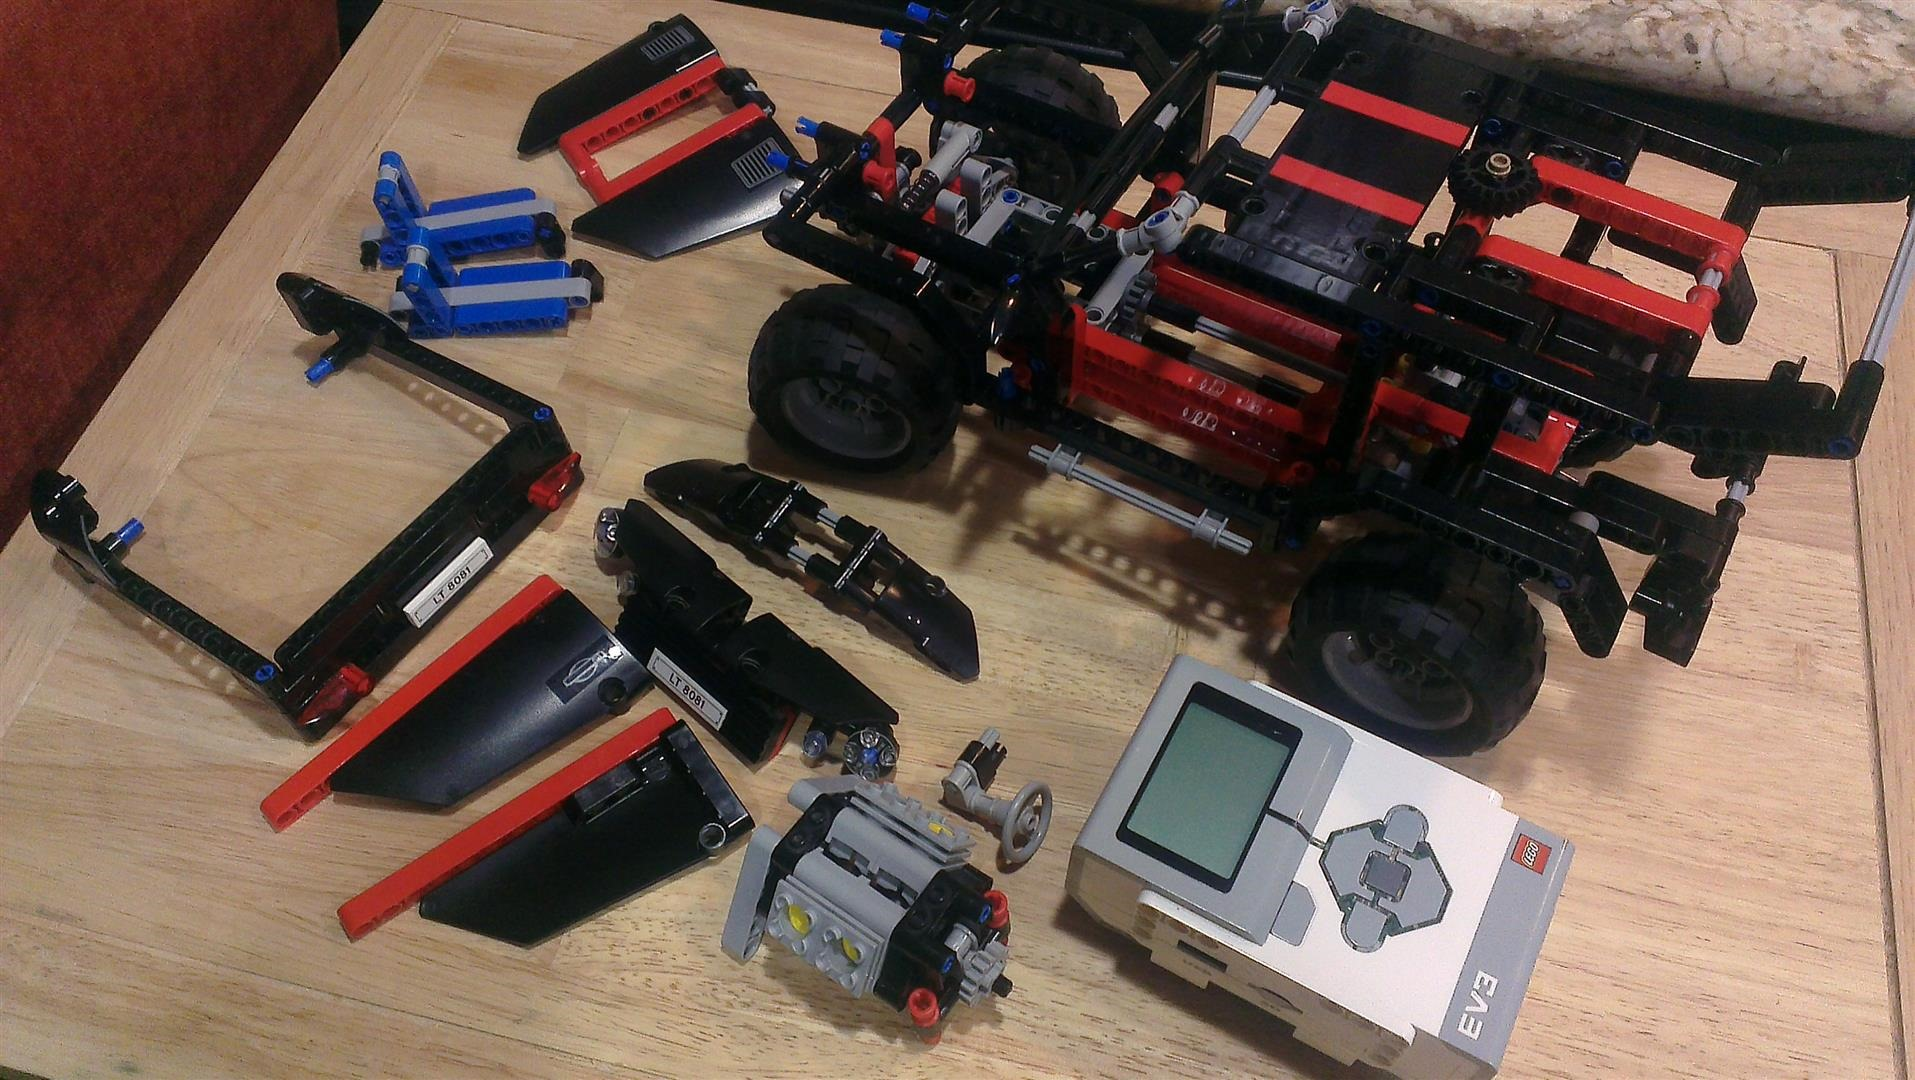 Putting an EV3 into a Lego Technic Cruiser   think simple, live simple